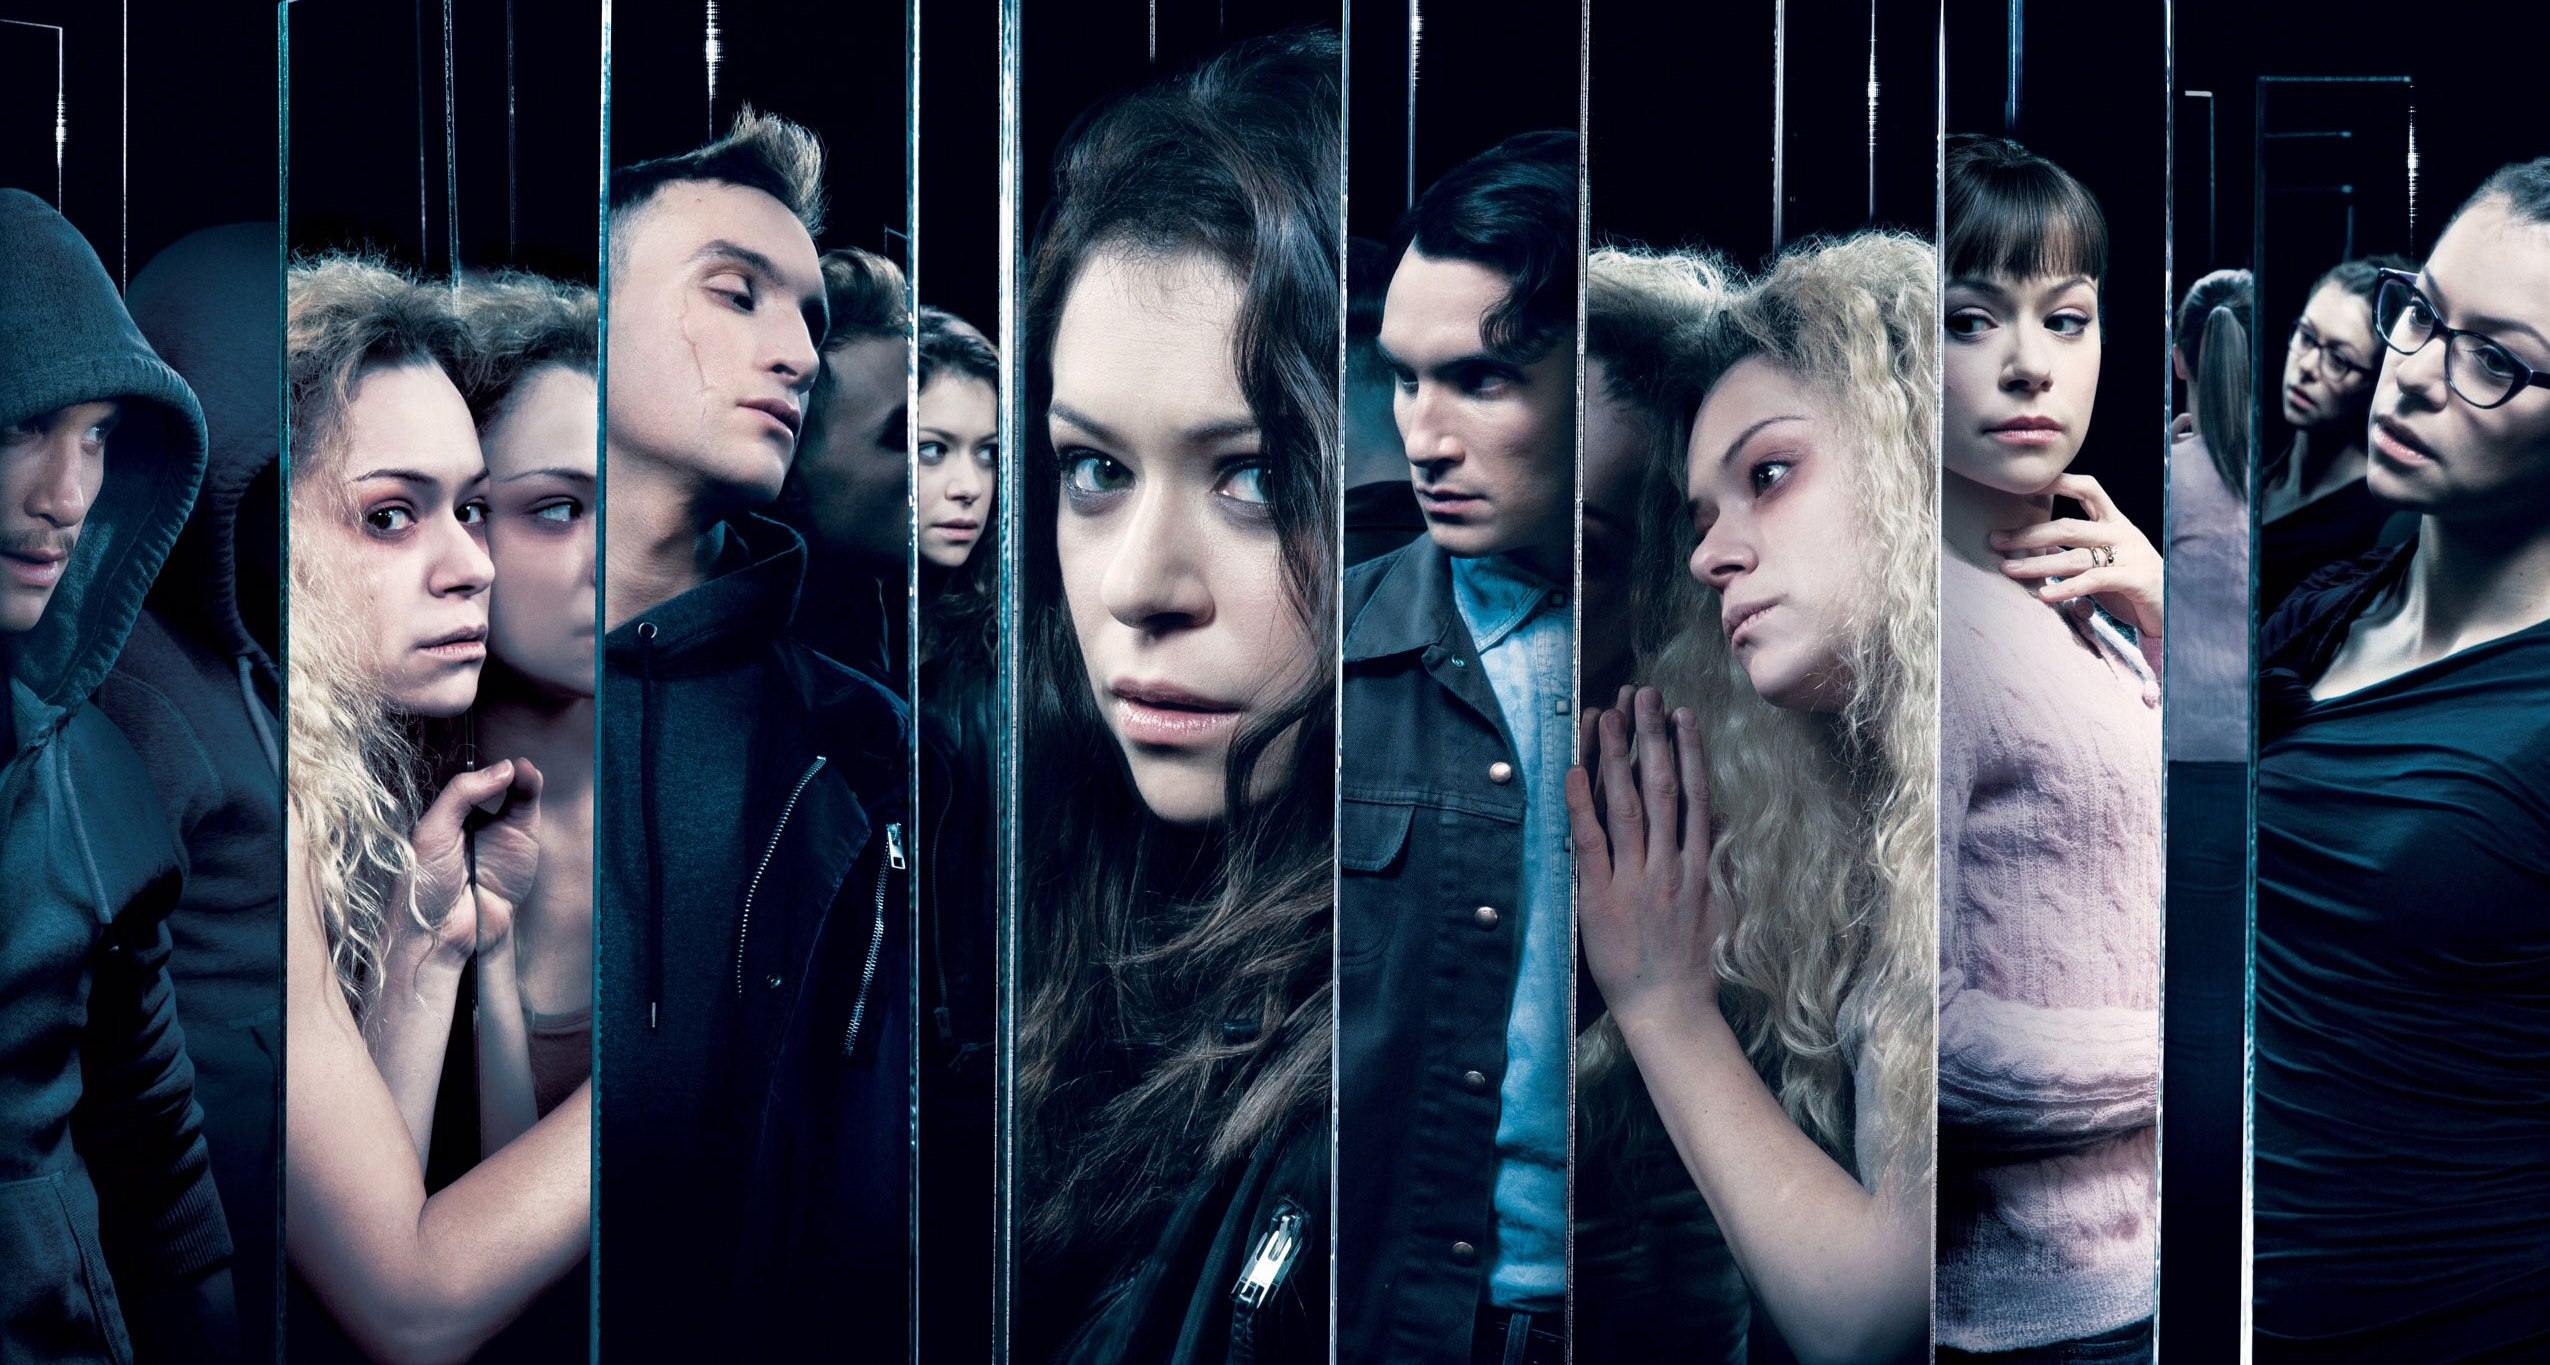 The Cast of Orphan Black Season 2